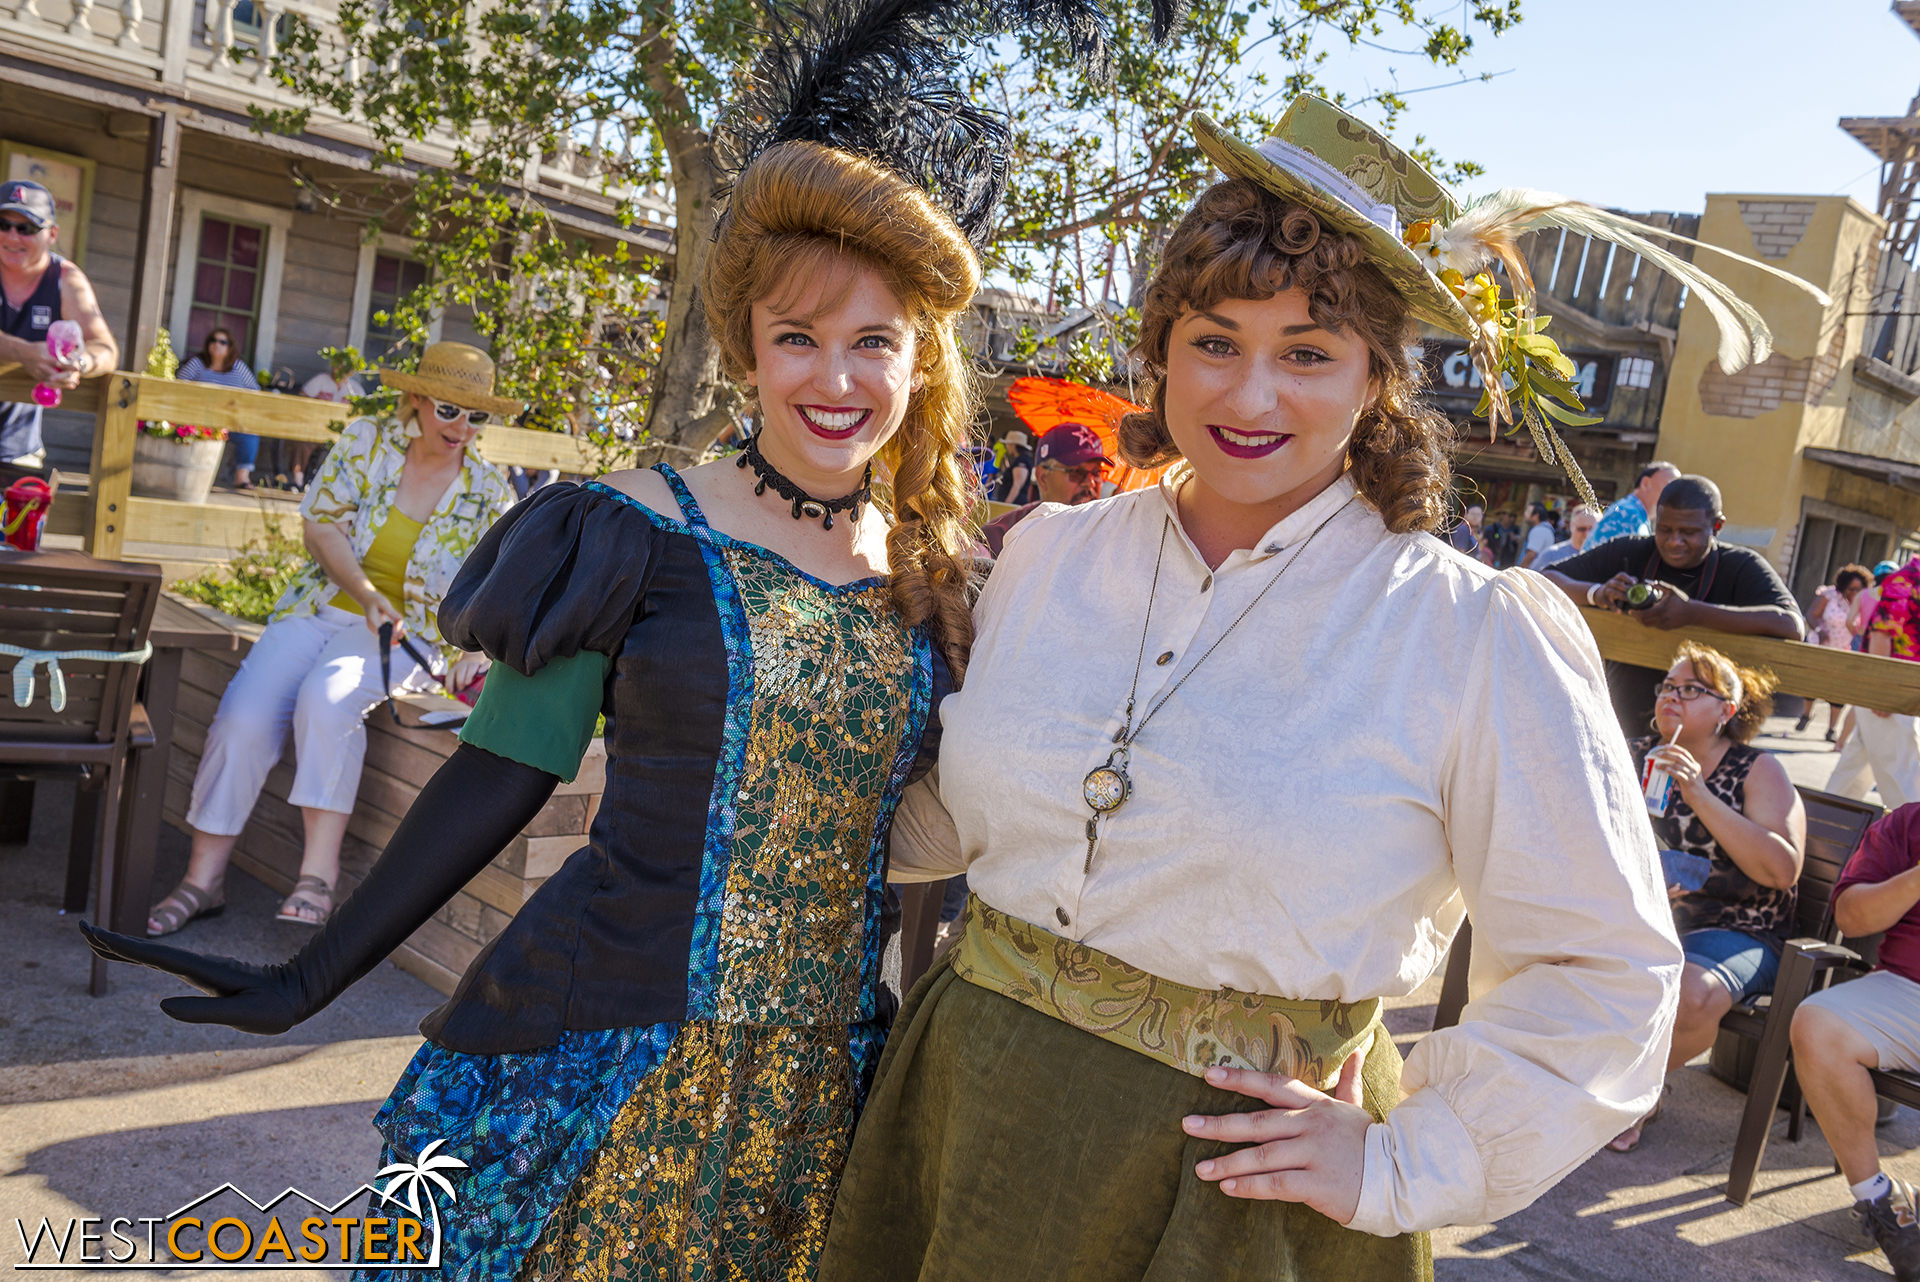 She's friends with the Calico Saloon cast.